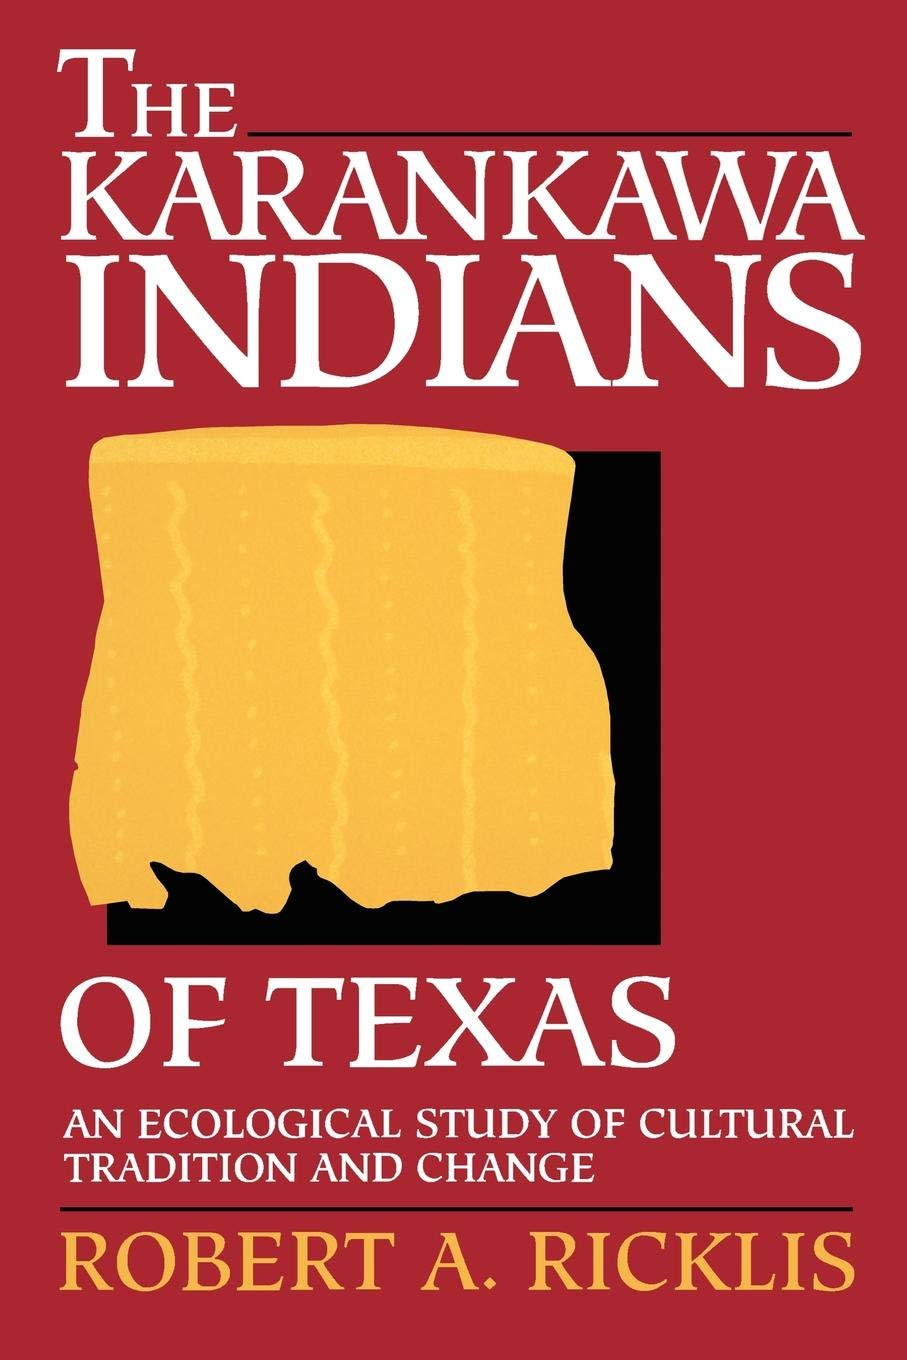 The Karankawa Indians of Texas: An Ecological Study of Cultural ...